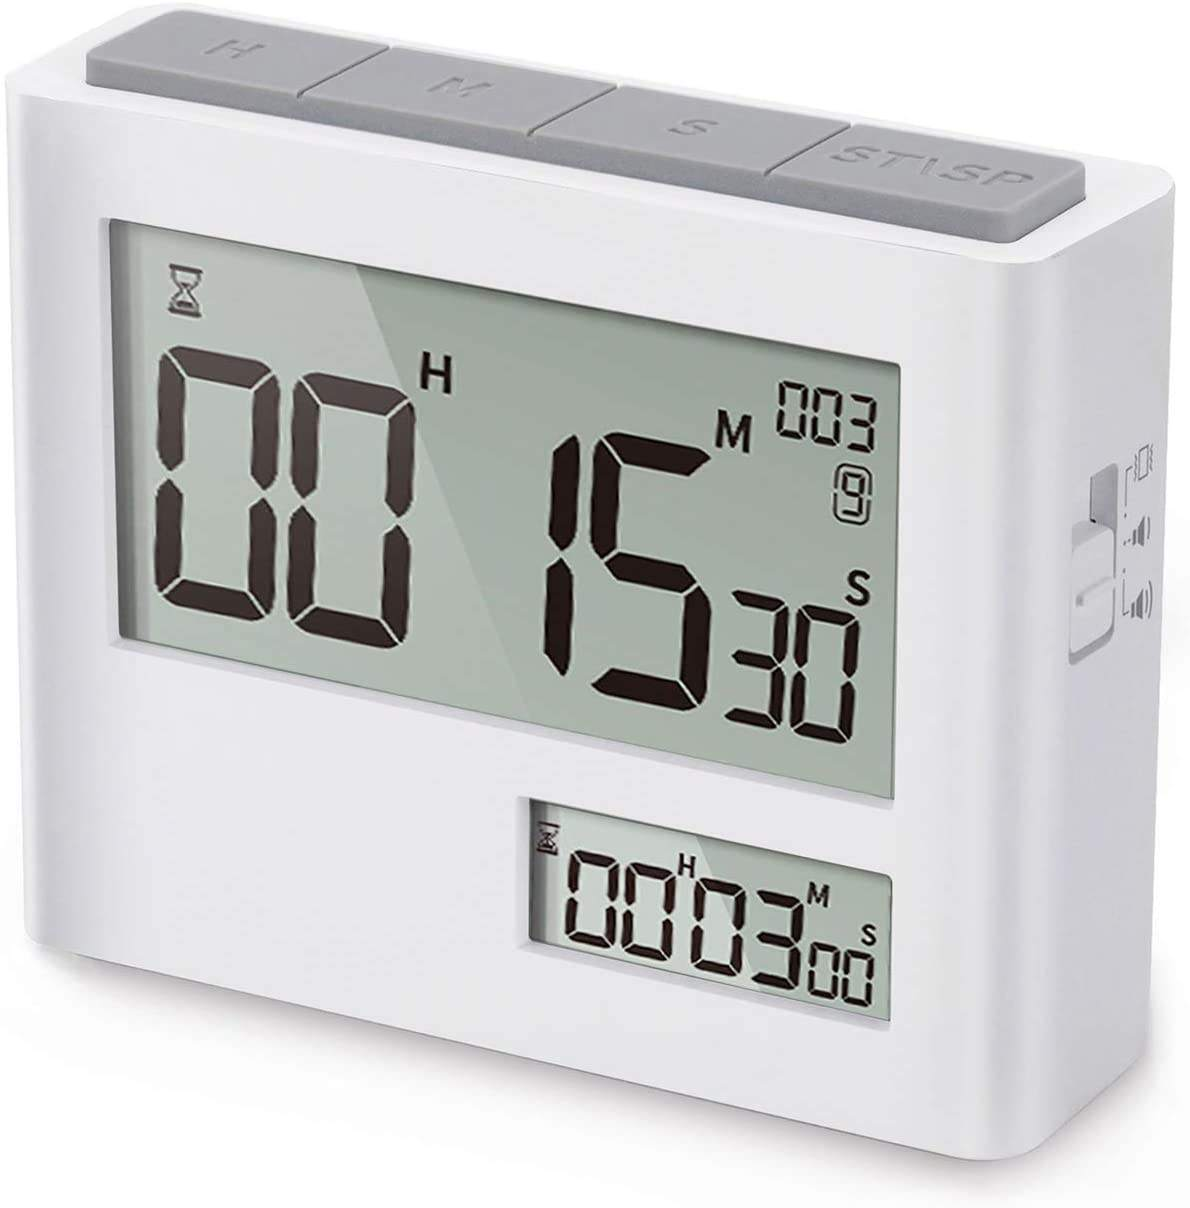 New Pomodoro Clock Timer Coffee Meeting Kitchen laboratory Study Sport Cooking Gym Digital Countdown time timer